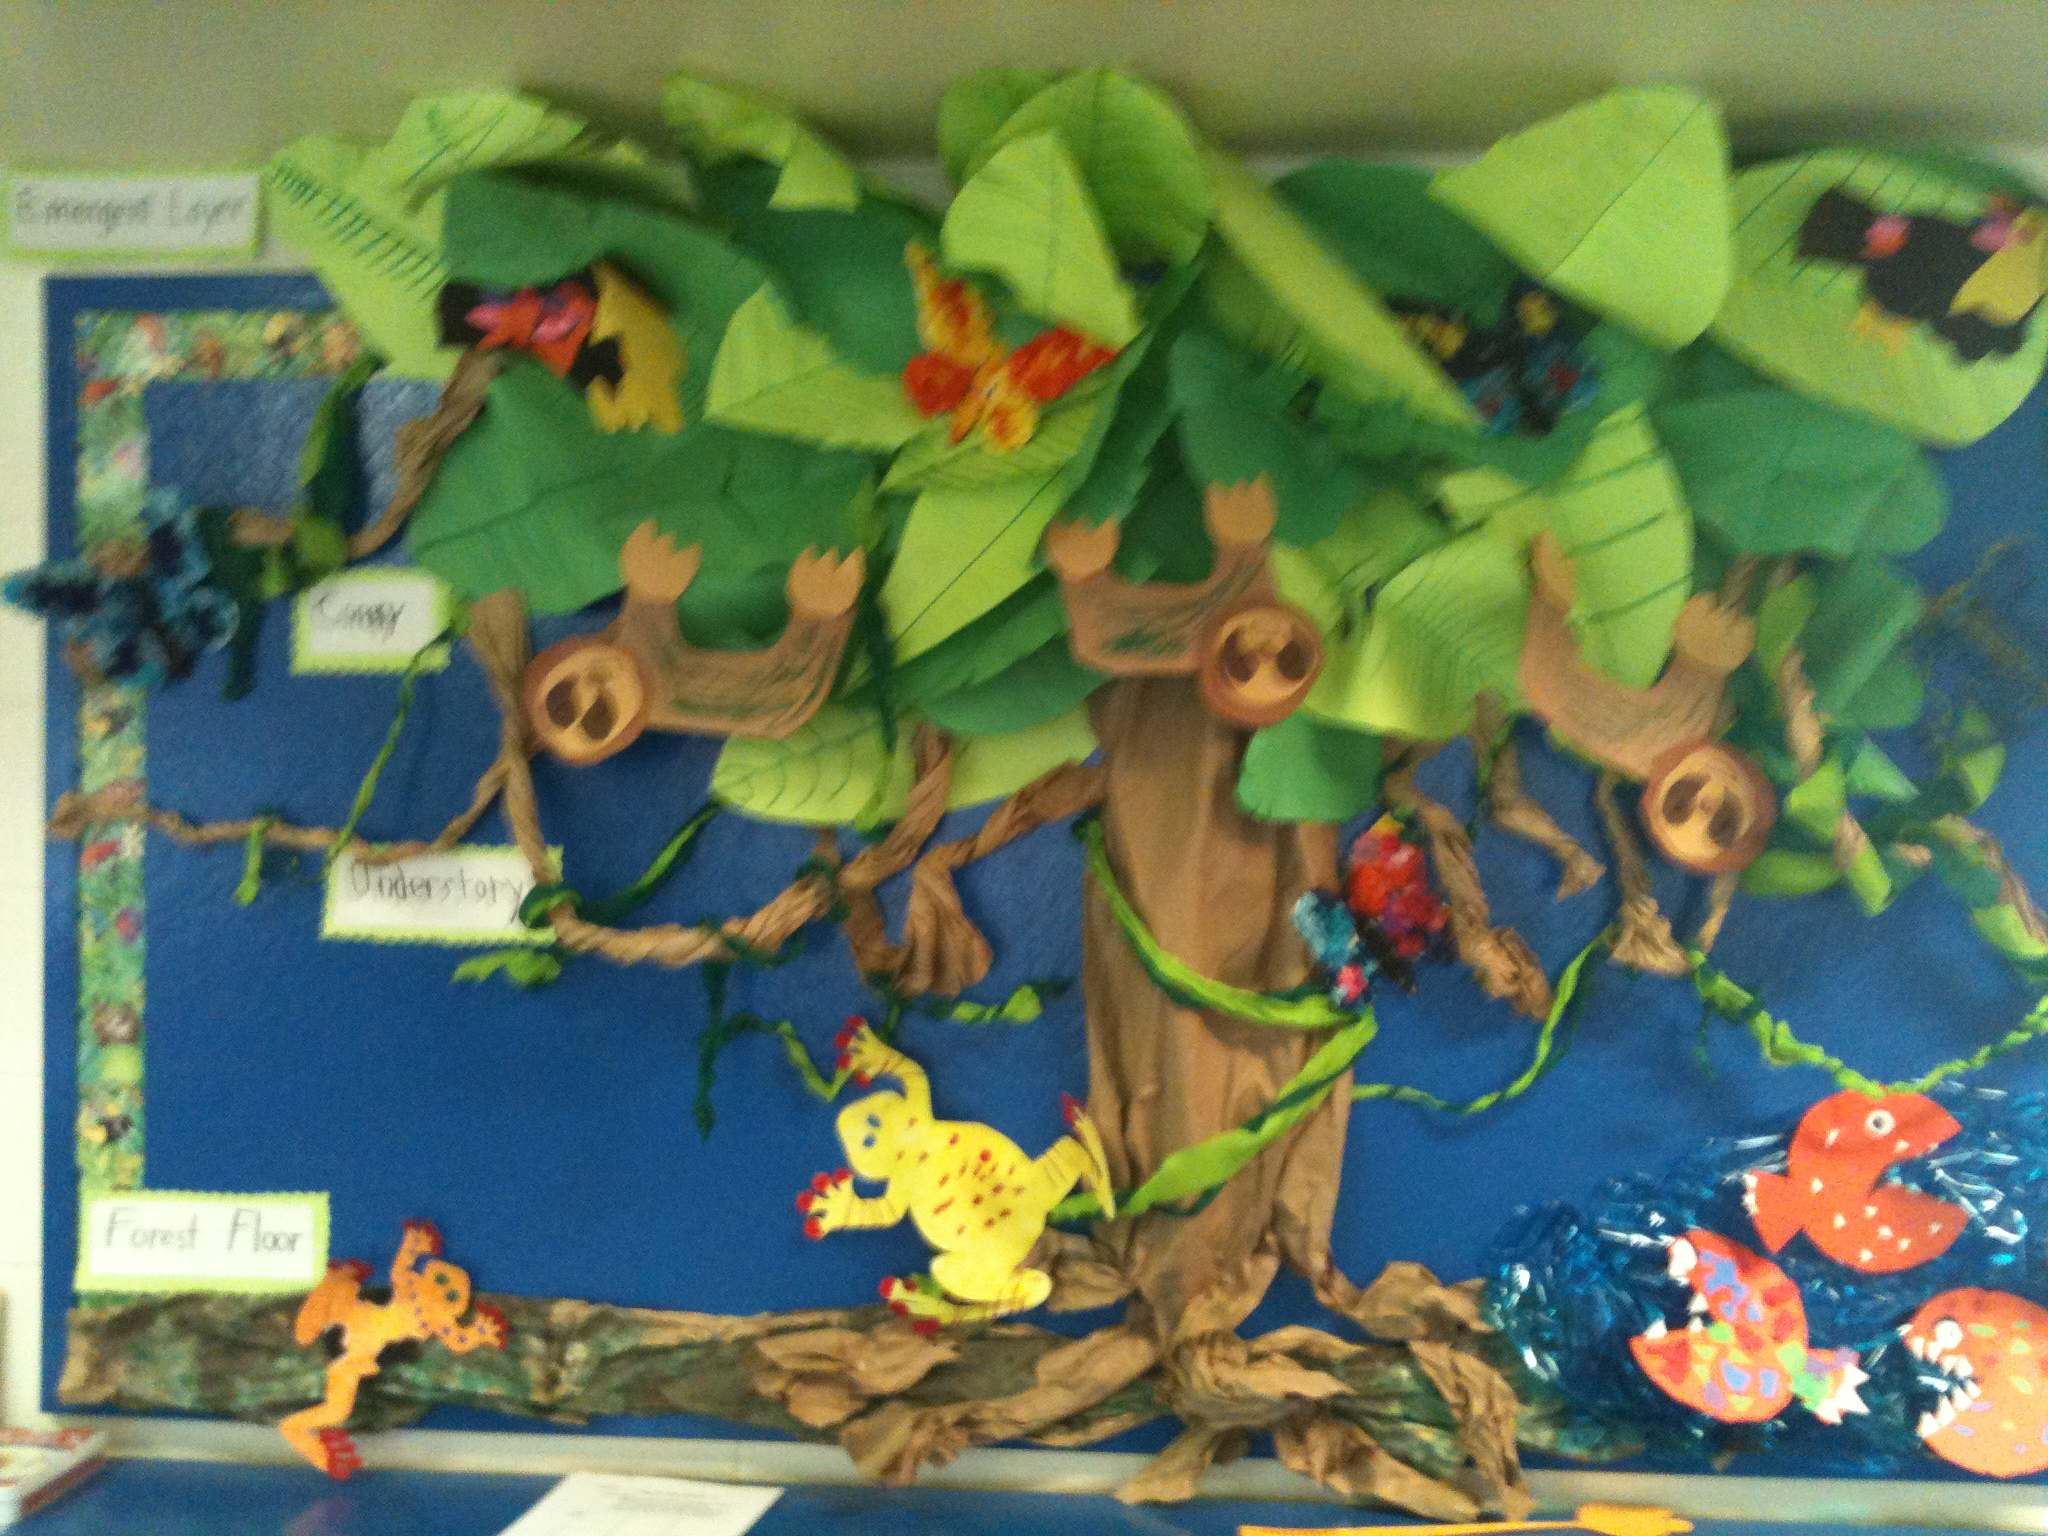 Drawn rainforest display ks2 From I my students a